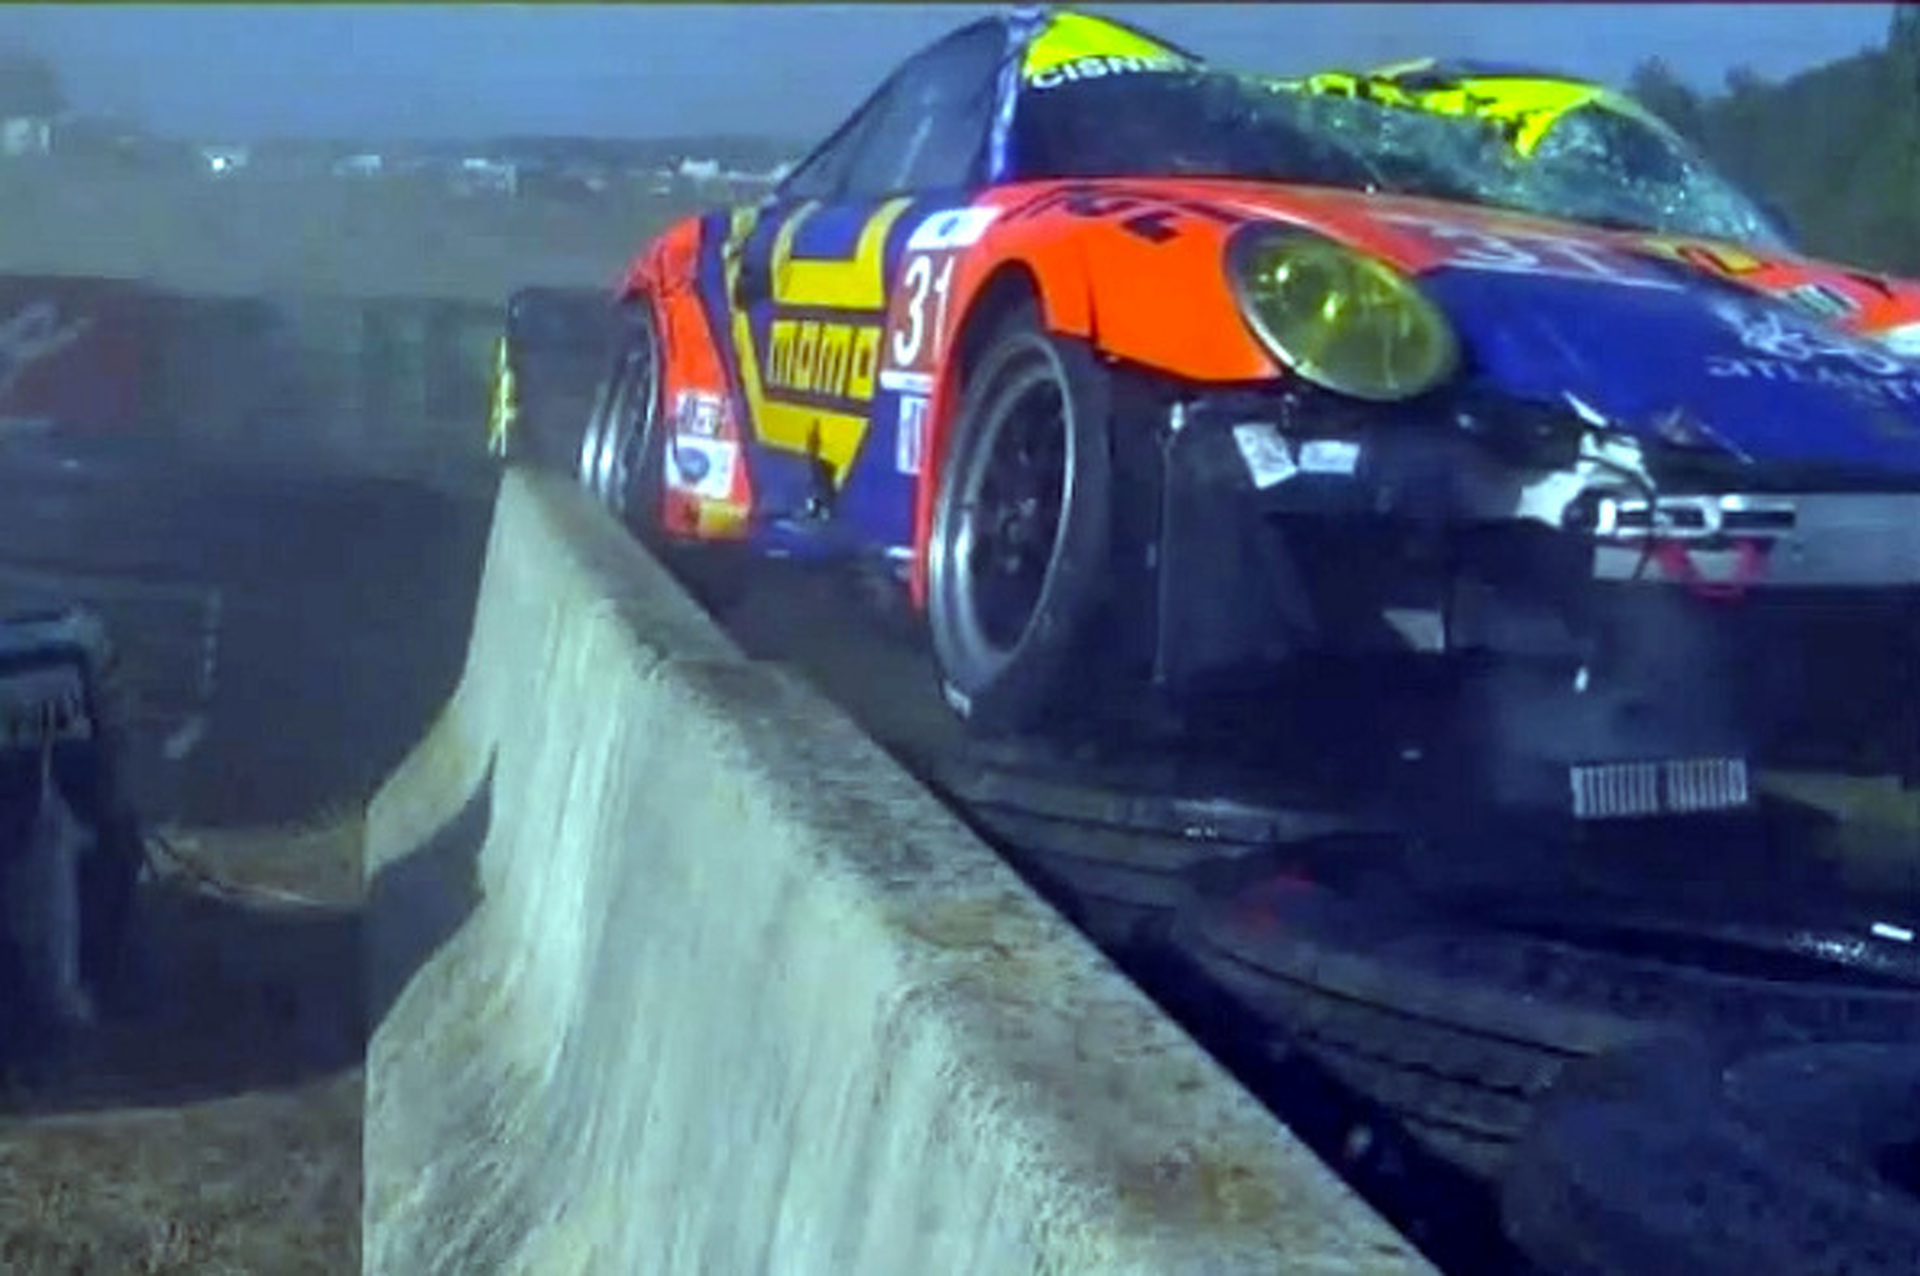 Porsche 911 Racecar Goes Airborne, Lands on Wall Inches from Cameraman [video]